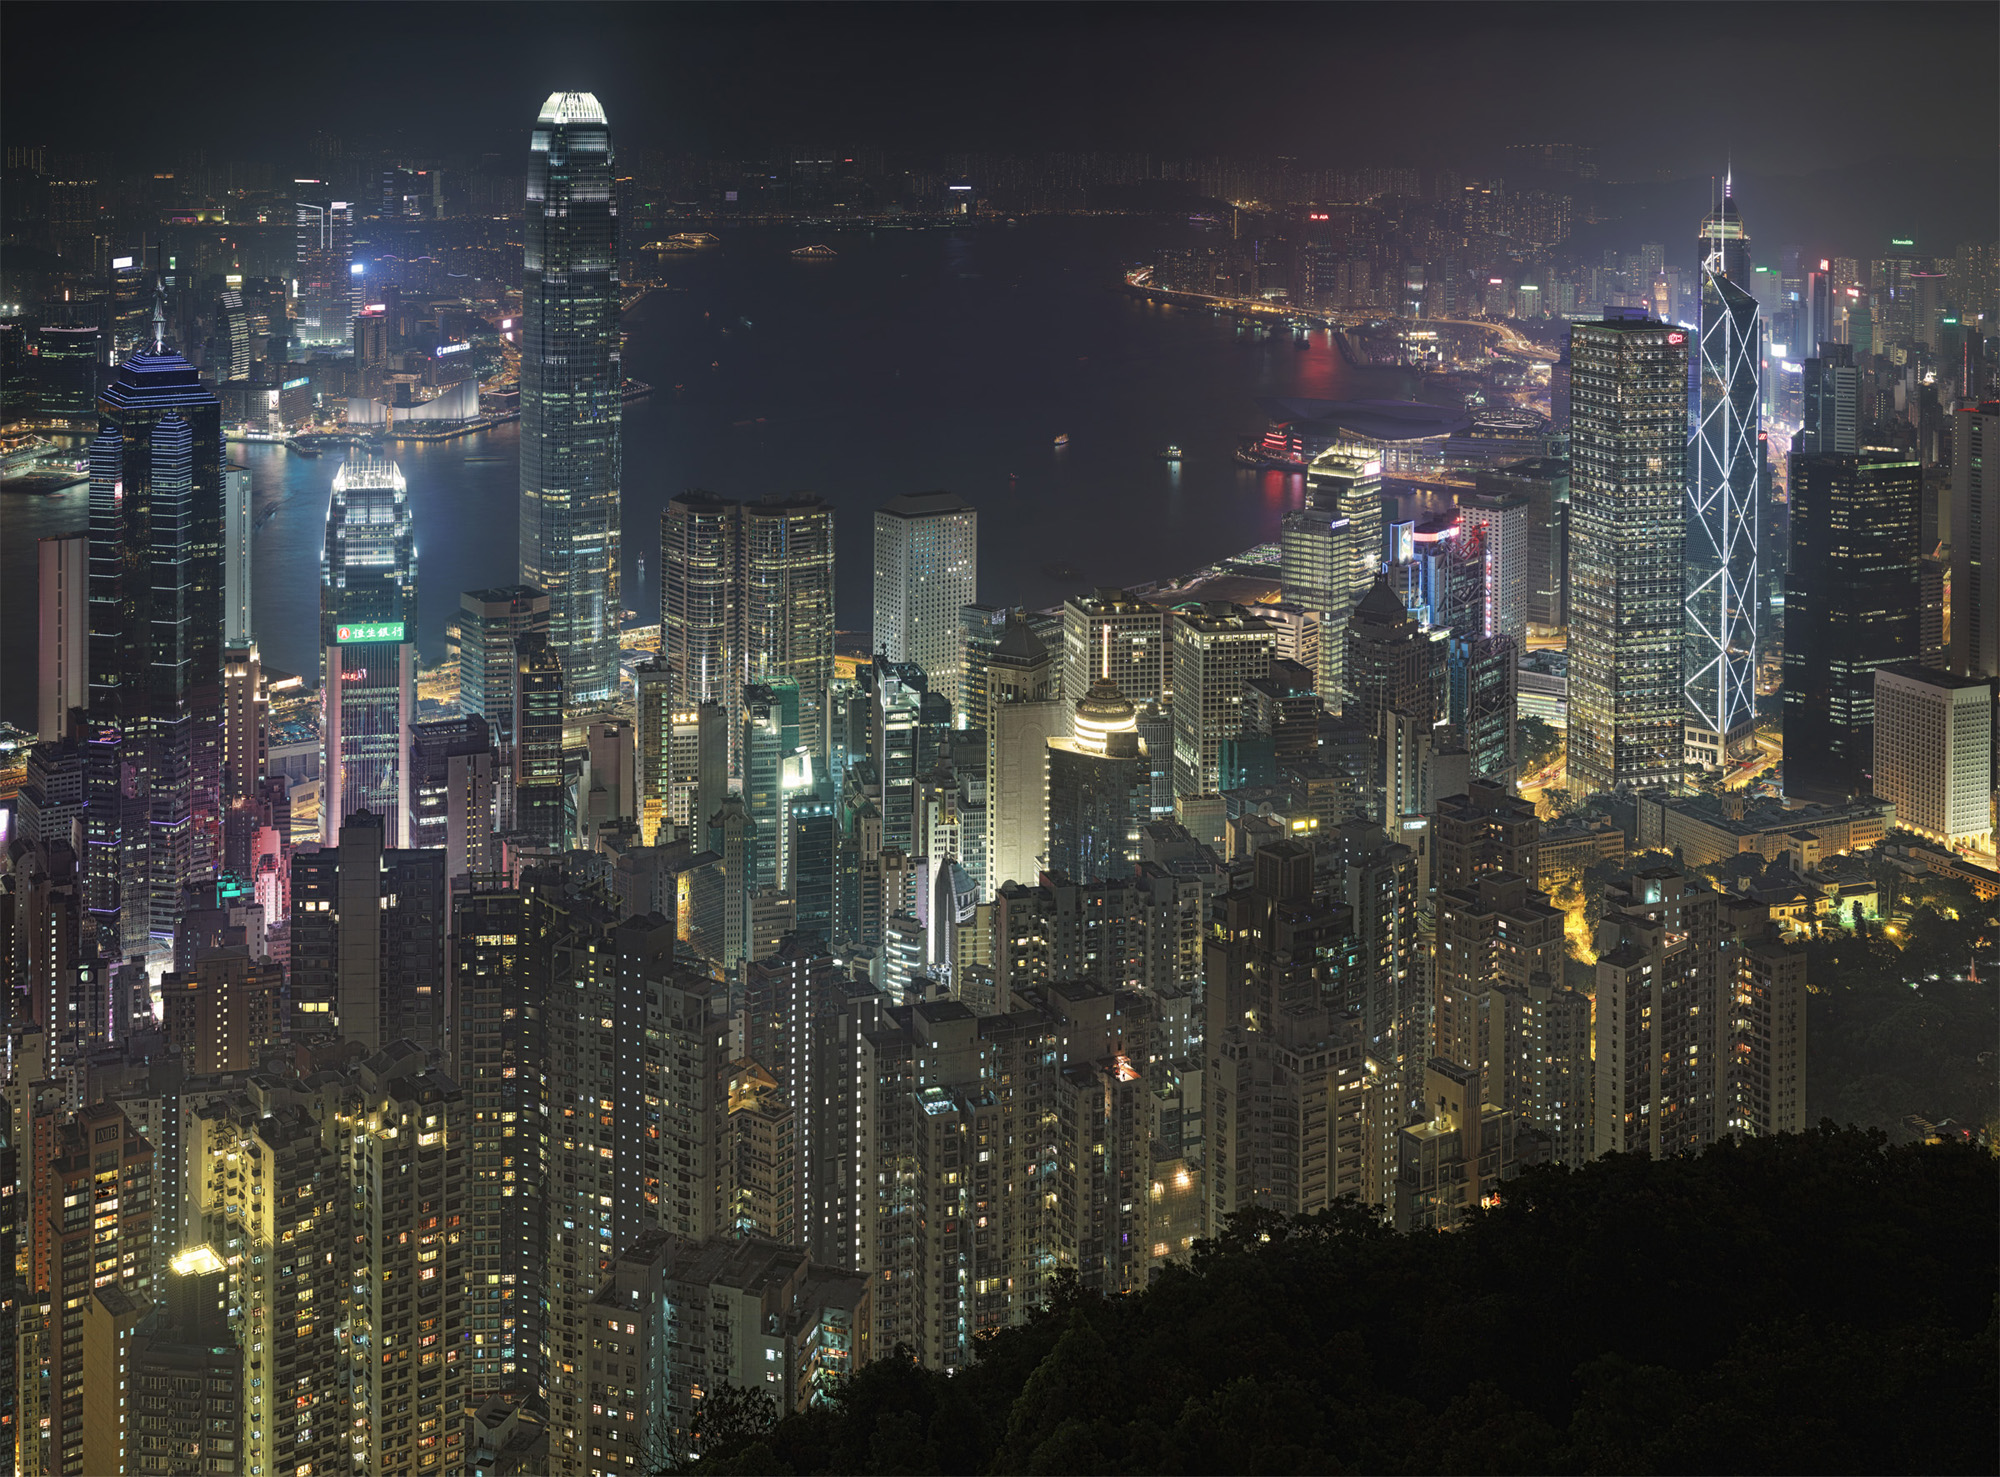 CHHK-PEK - Hong kong from the Peak.jpg